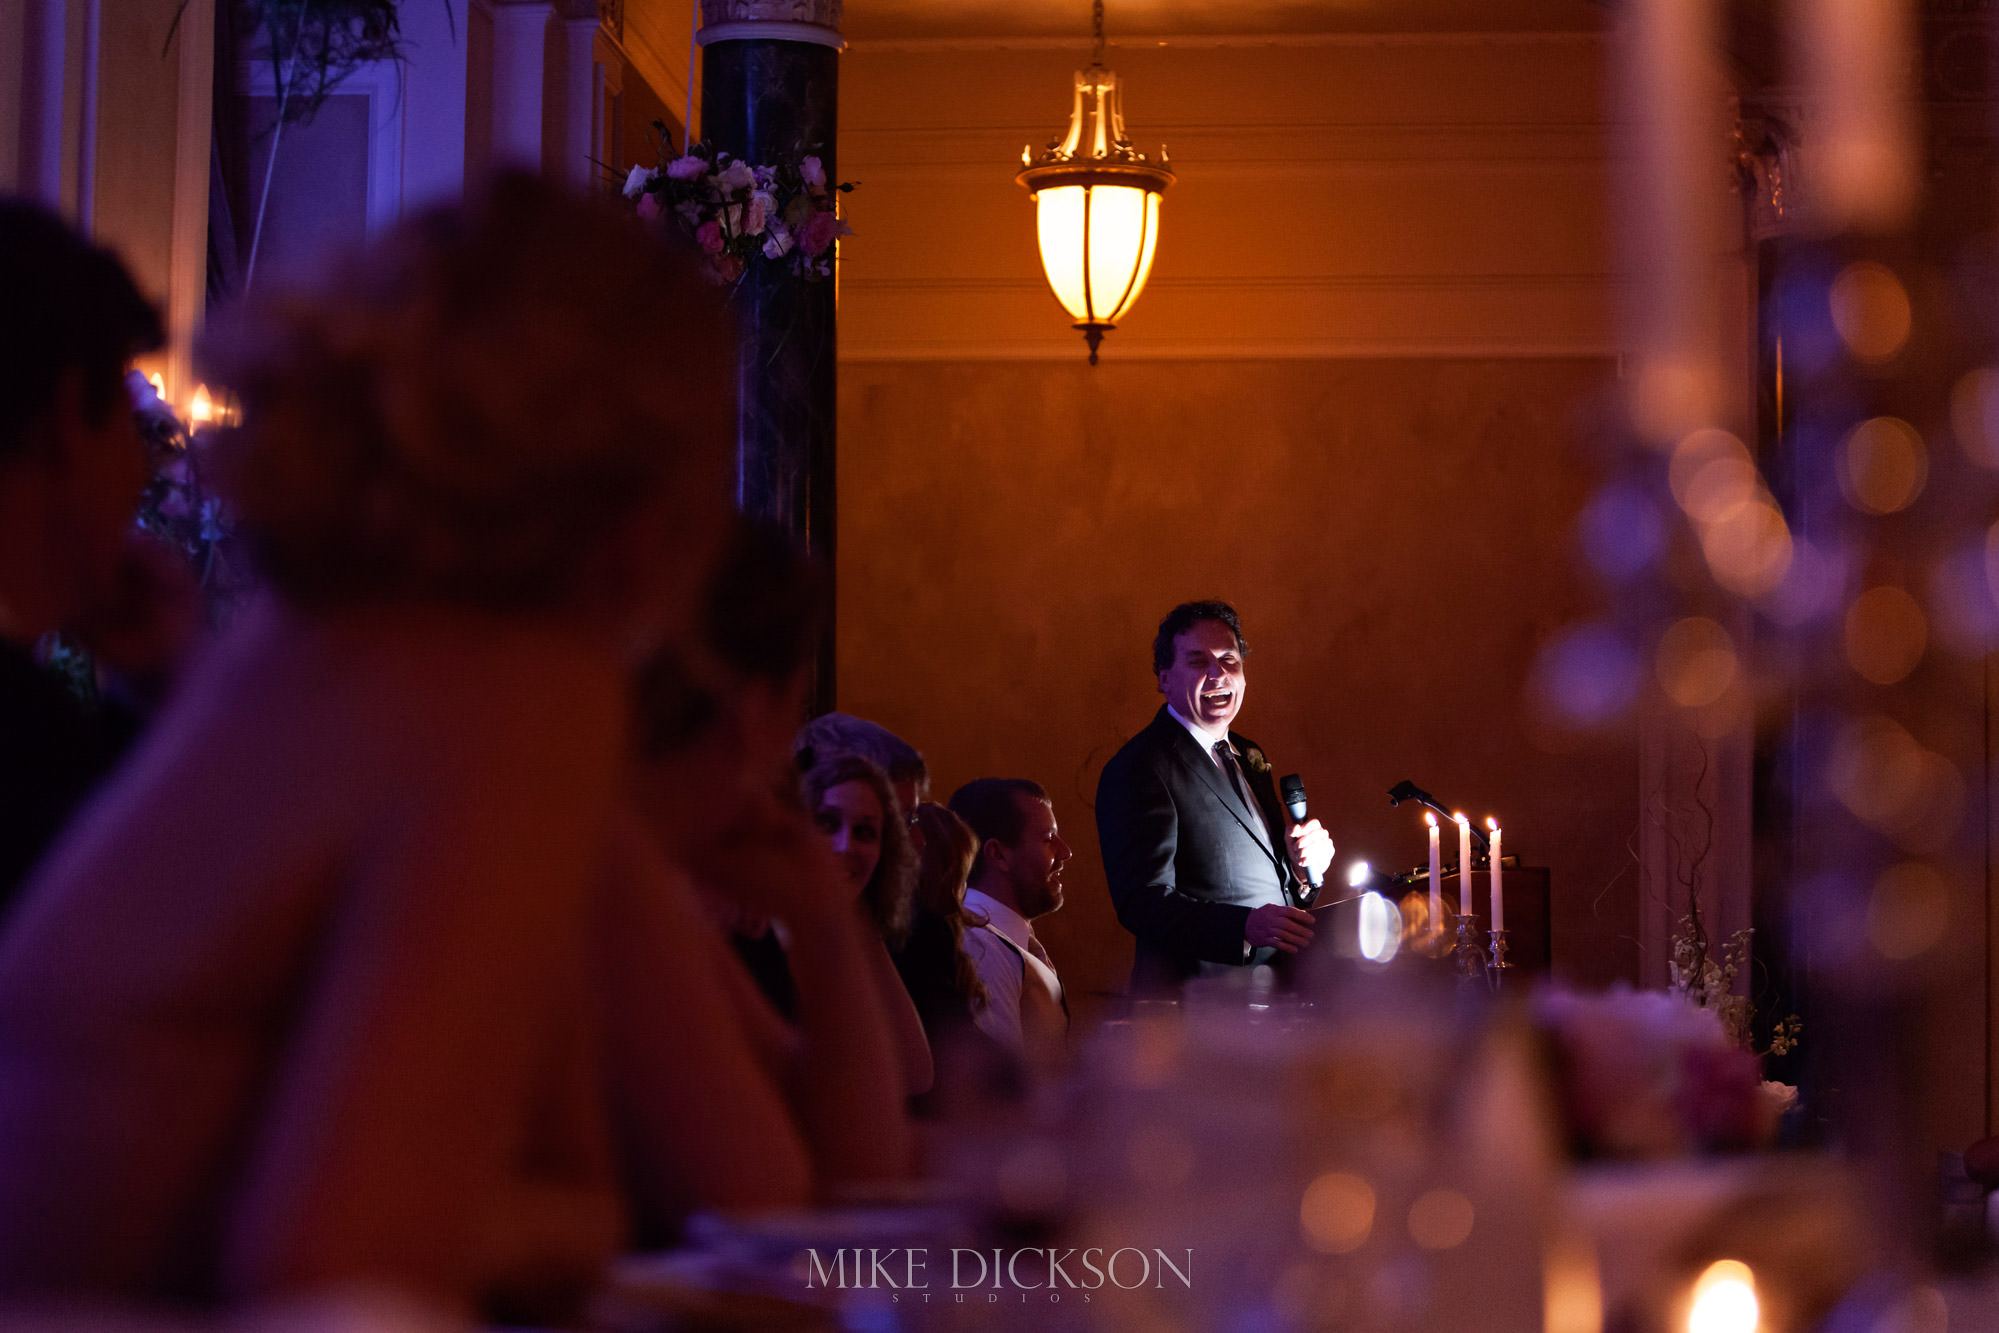 Celebration, Chateau Laurier, Ontario, Ottawa, Photography, Summer, Time of Year, Venue, Wedding, © Mike Dickson